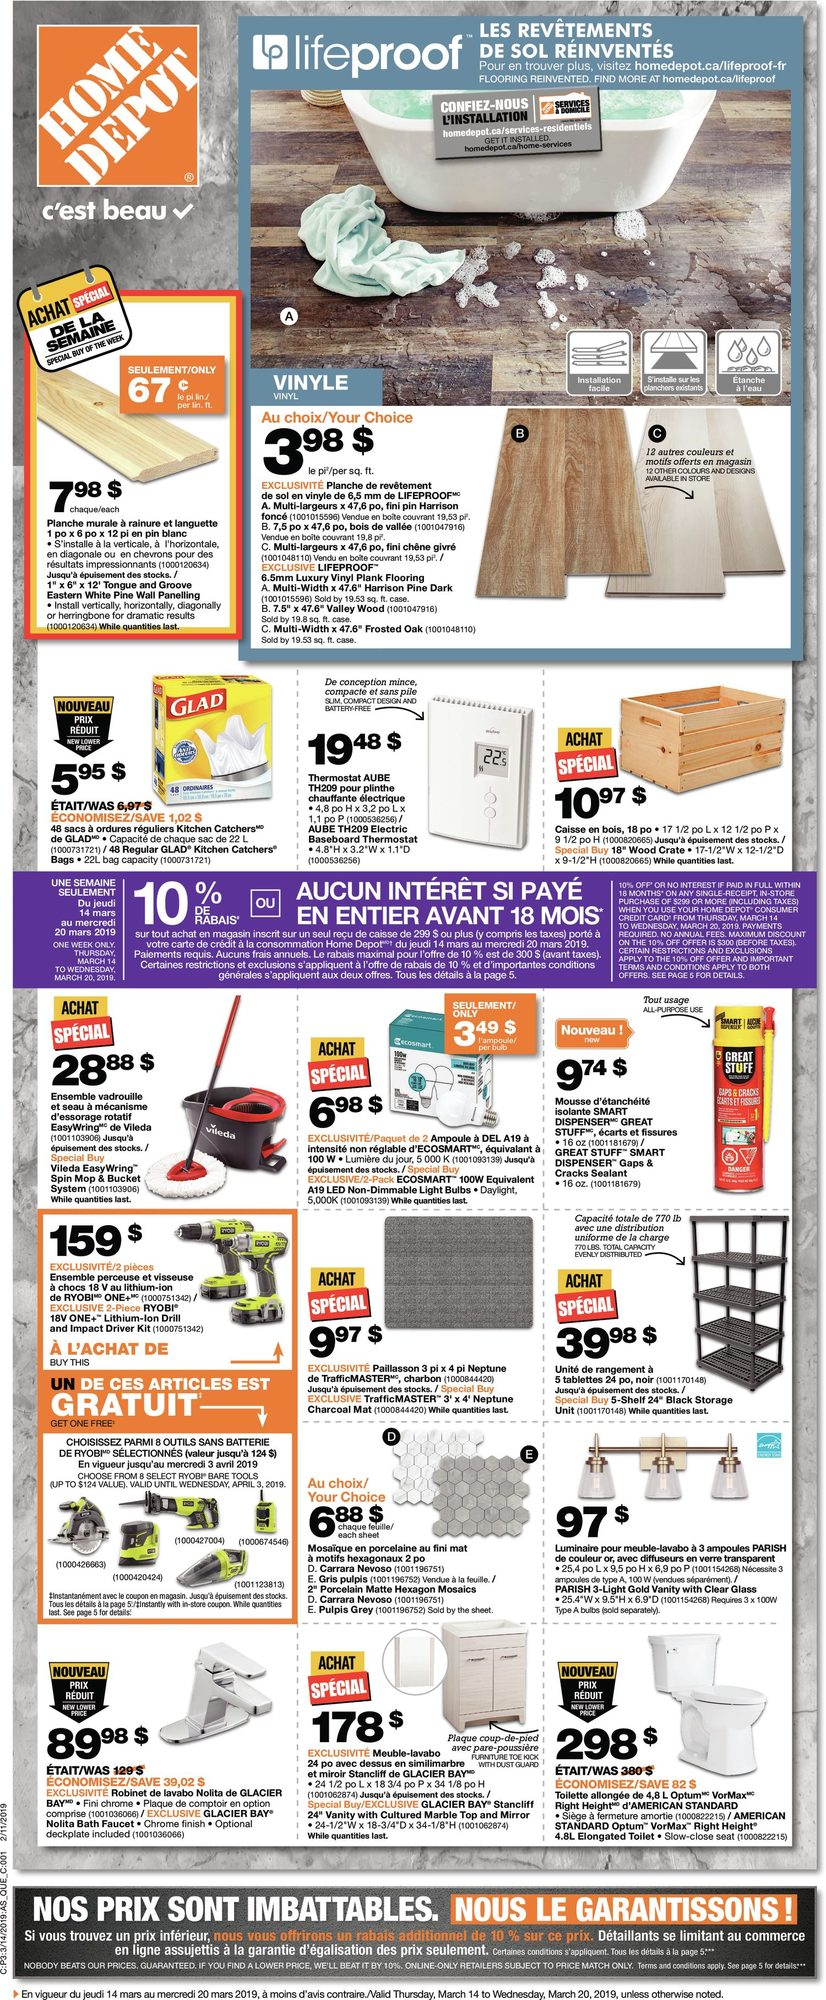 Weekly Specials - Home Depot March 14 2019 | YP Shopwise